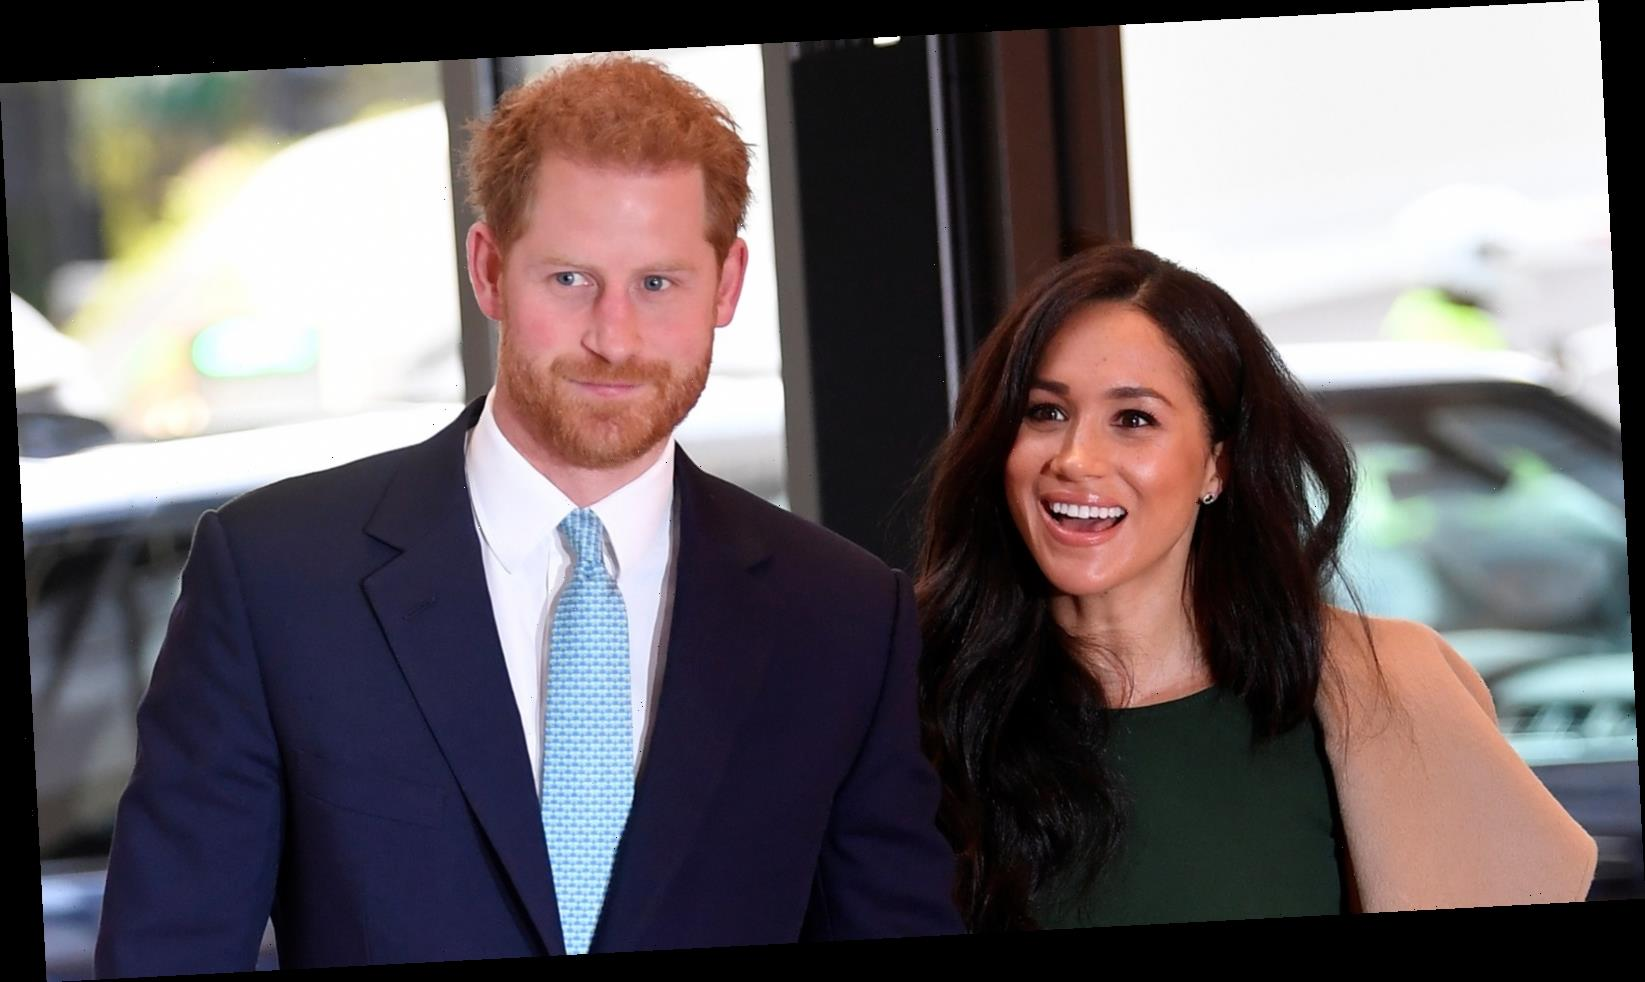 Meghan Markle and Harry are about to get a famous neighbor